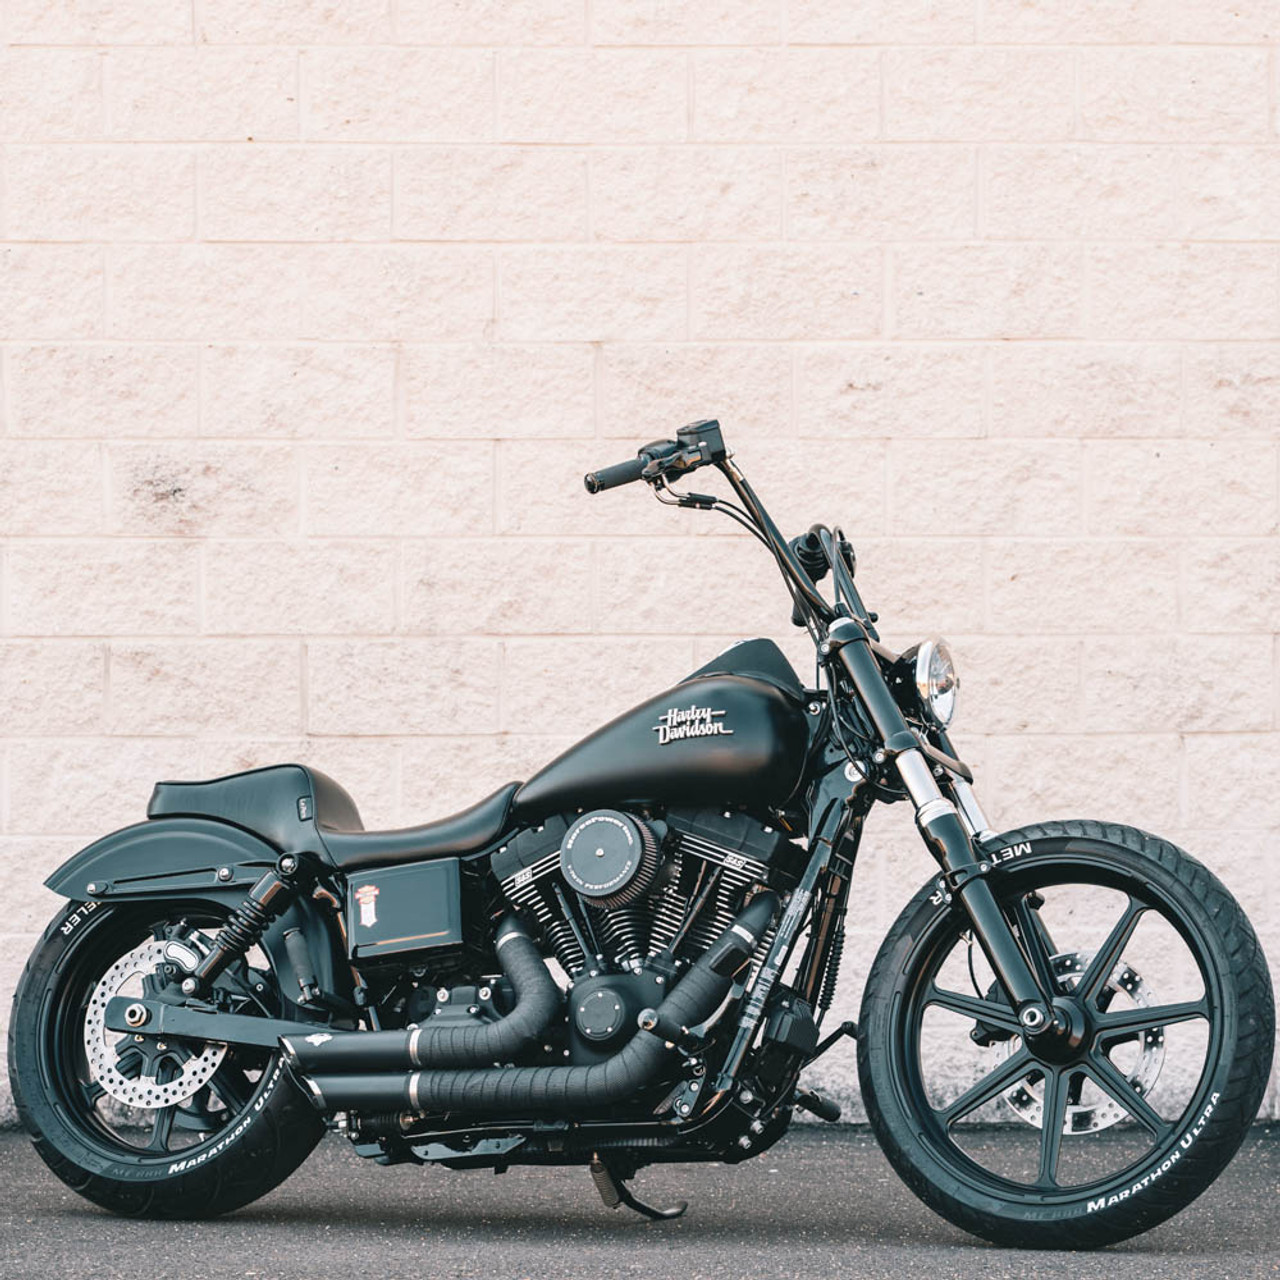 lepera cherokee seat for 2006 2017 harley dyna smooth  [ 1280 x 1280 Pixel ]